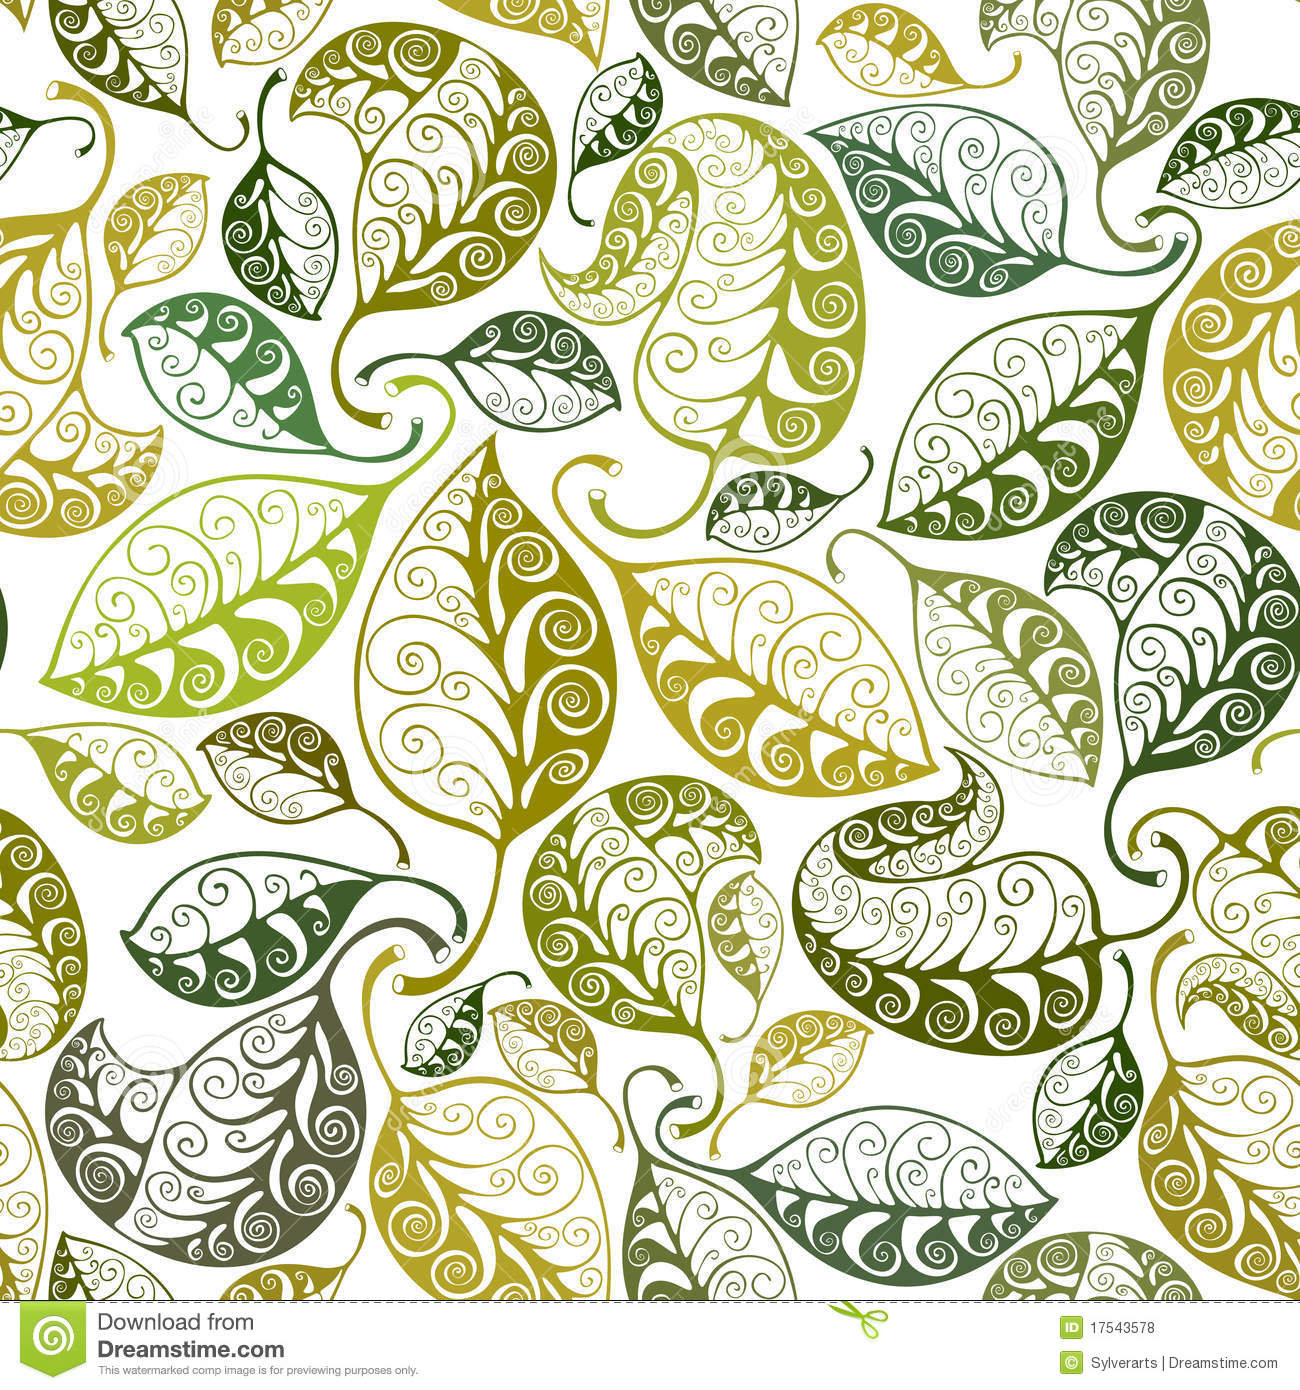 Seamless Leaves Pattern Royalty Free Stock Photos - Image: 17543578